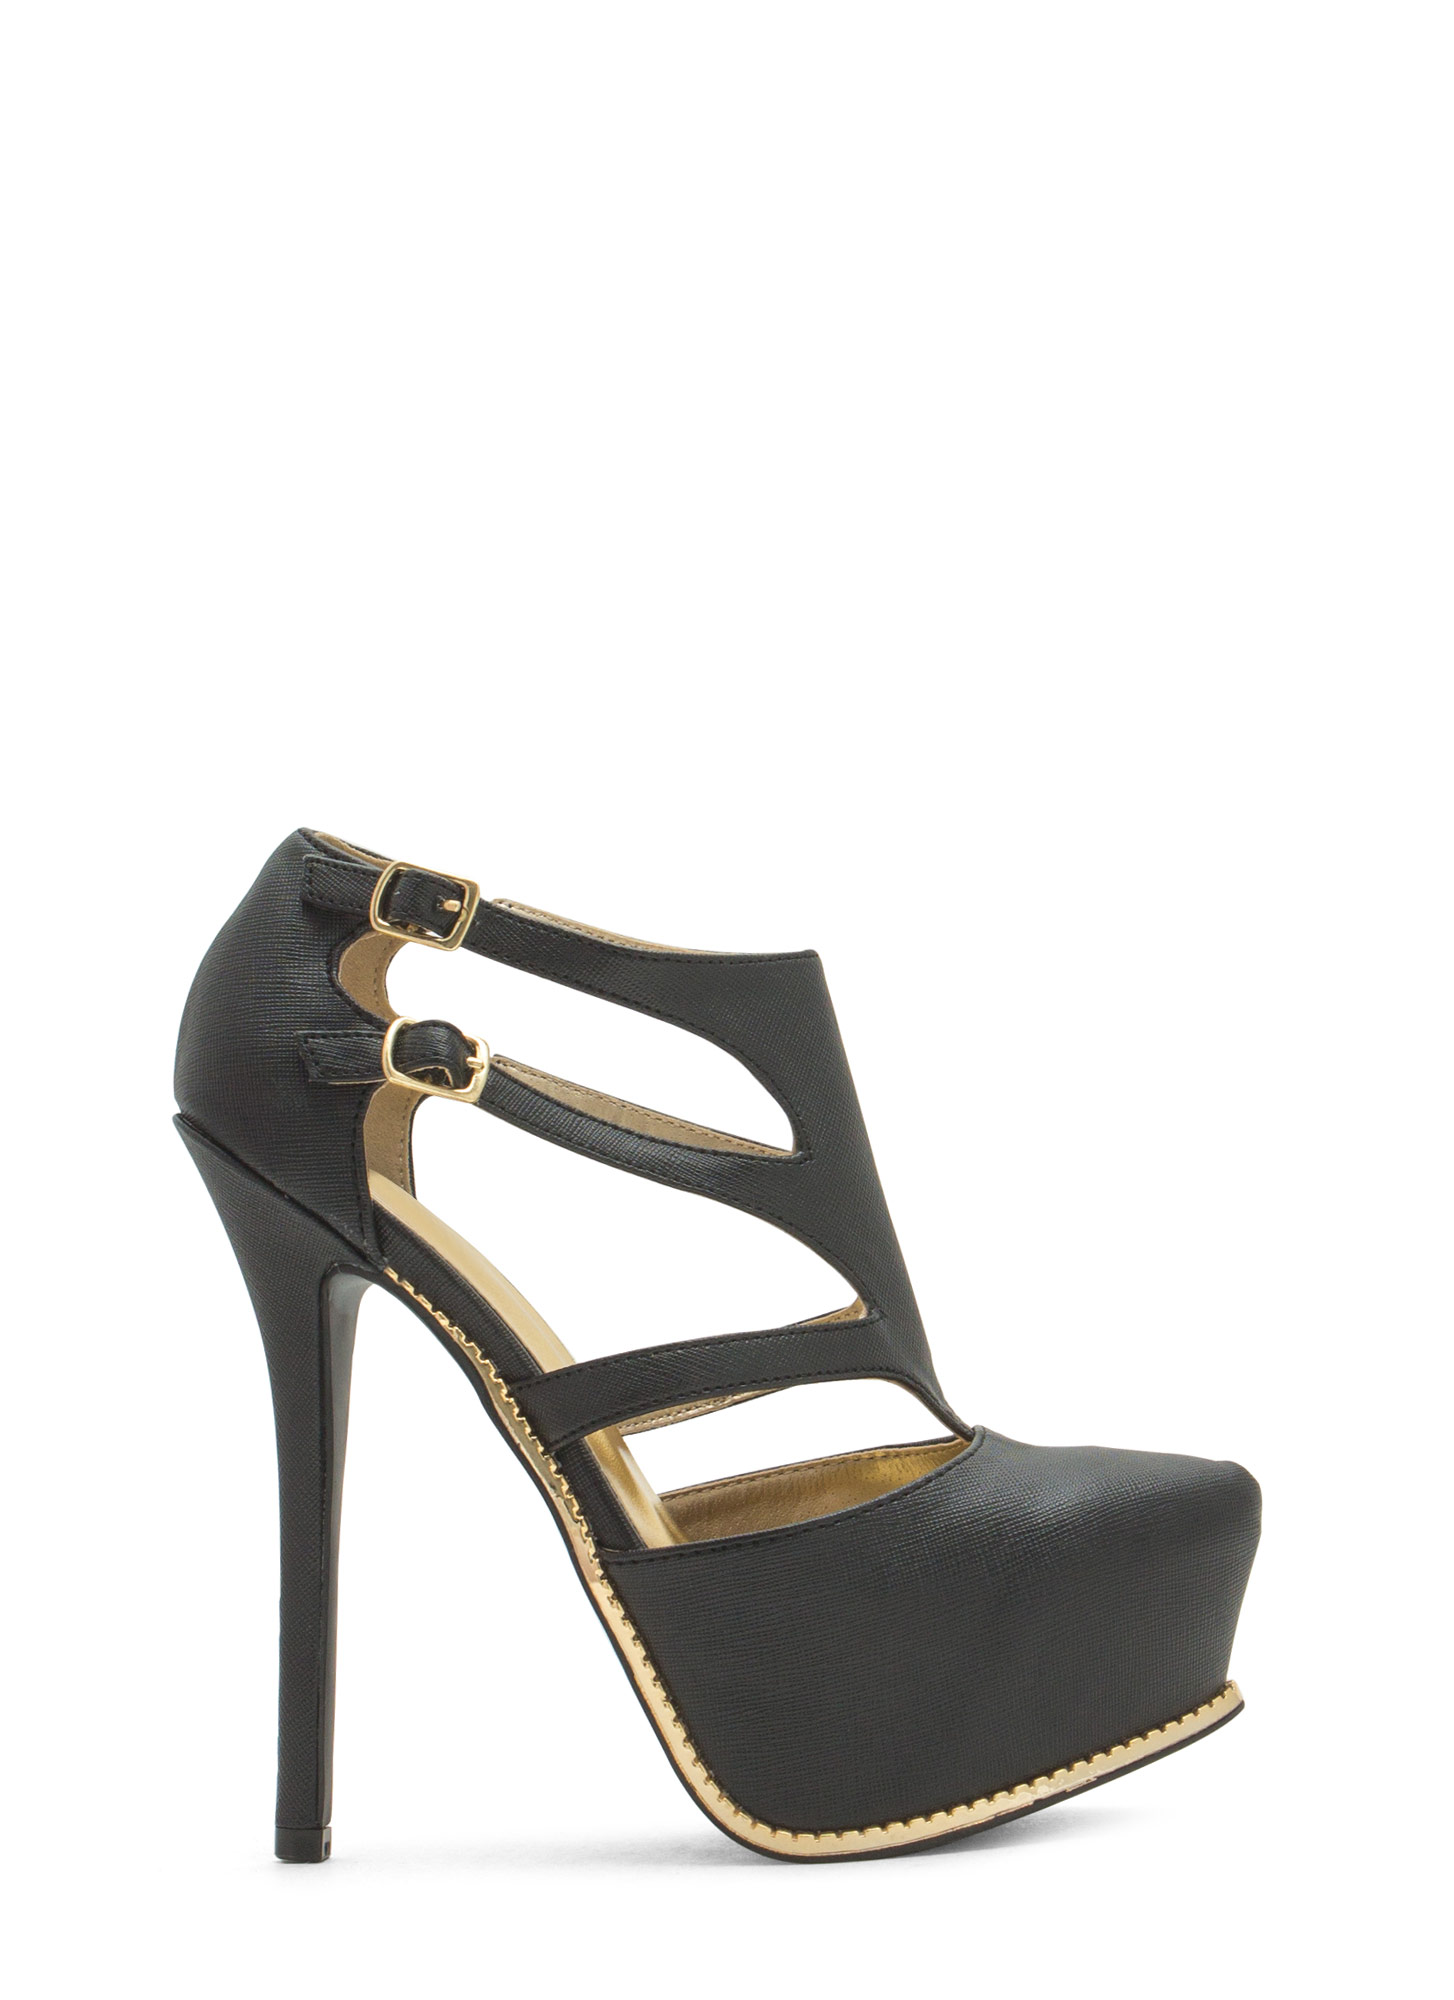 Textured Toothsome Strappy Platforms BLACK